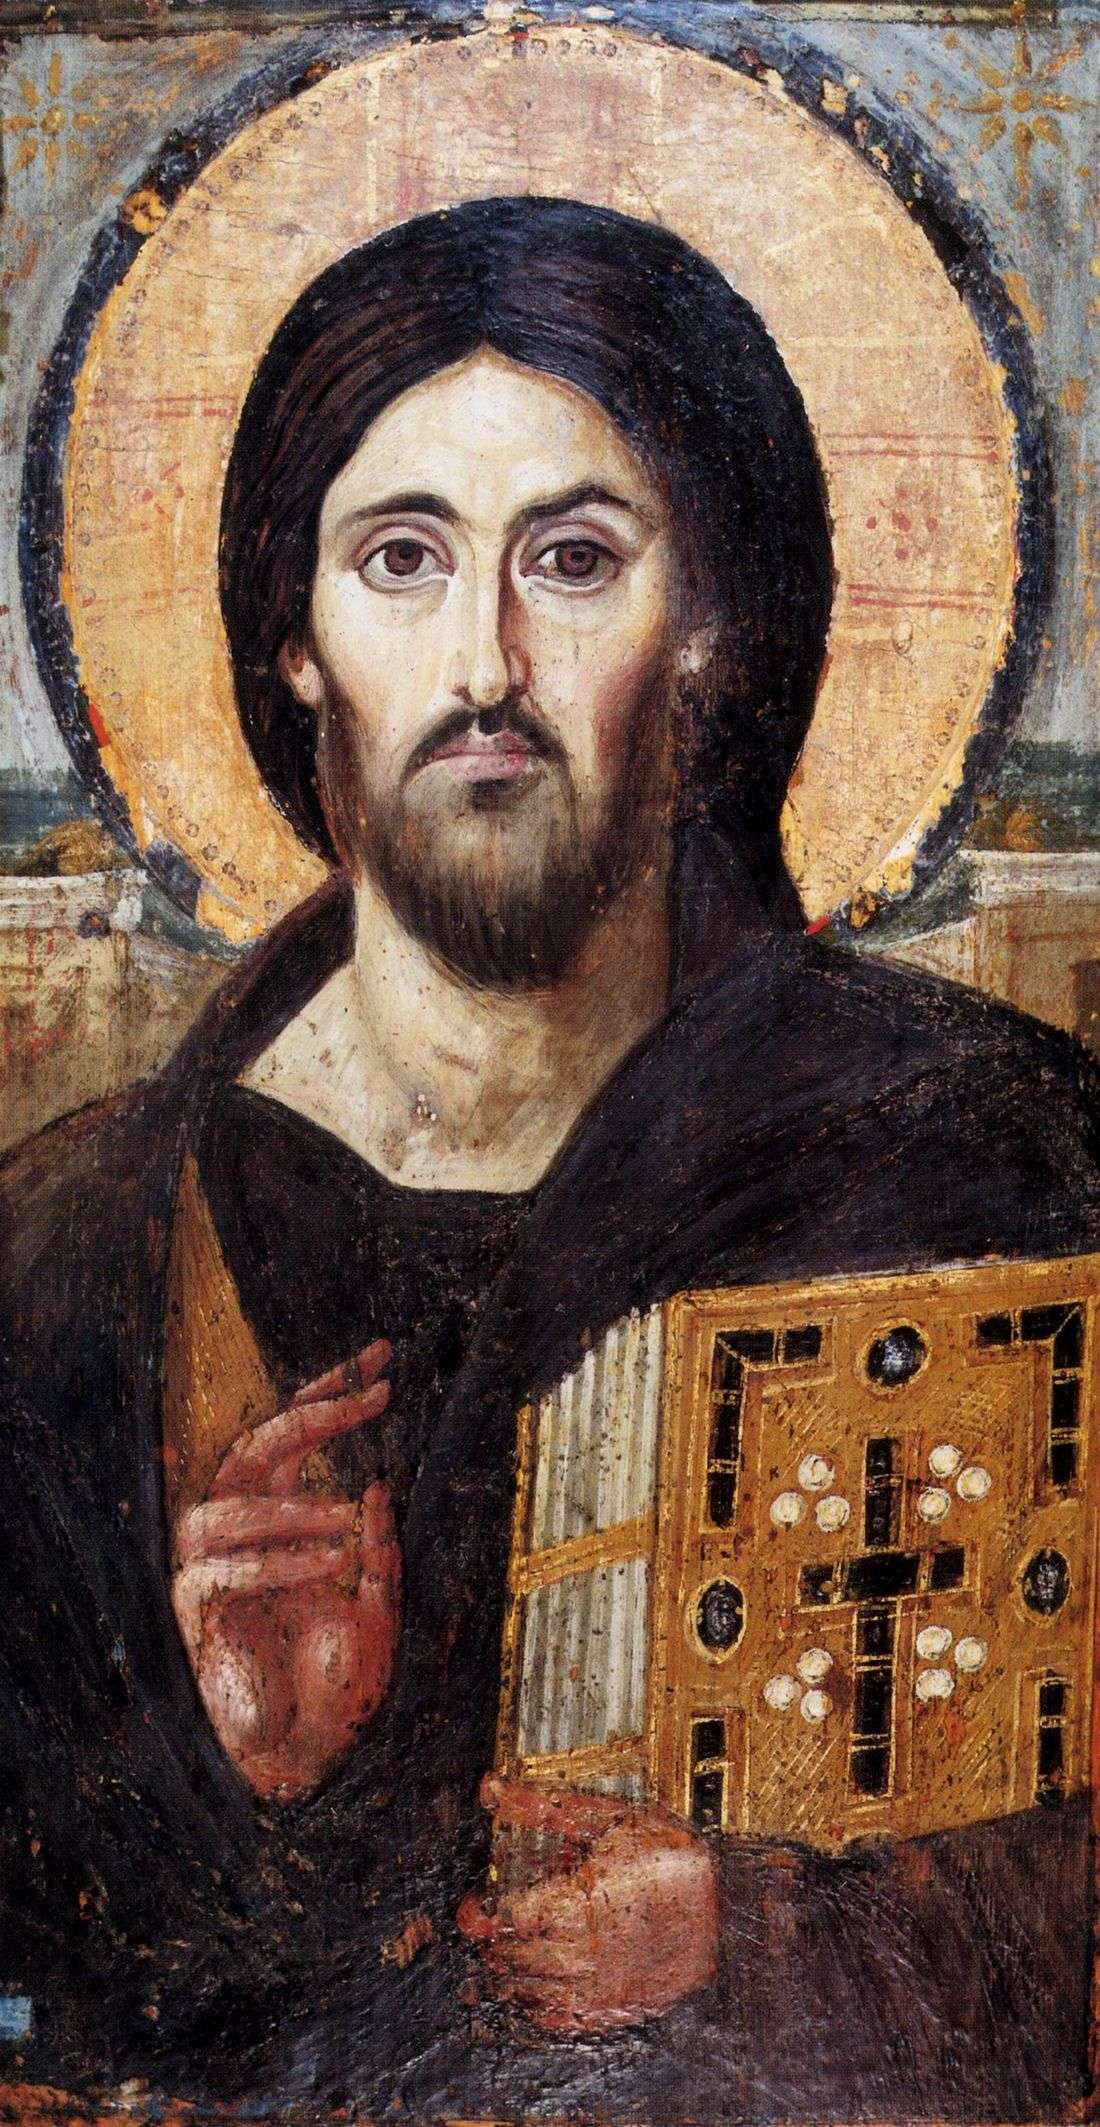 One of the oldest icons of Jesus in existence, Christ Pantokrator